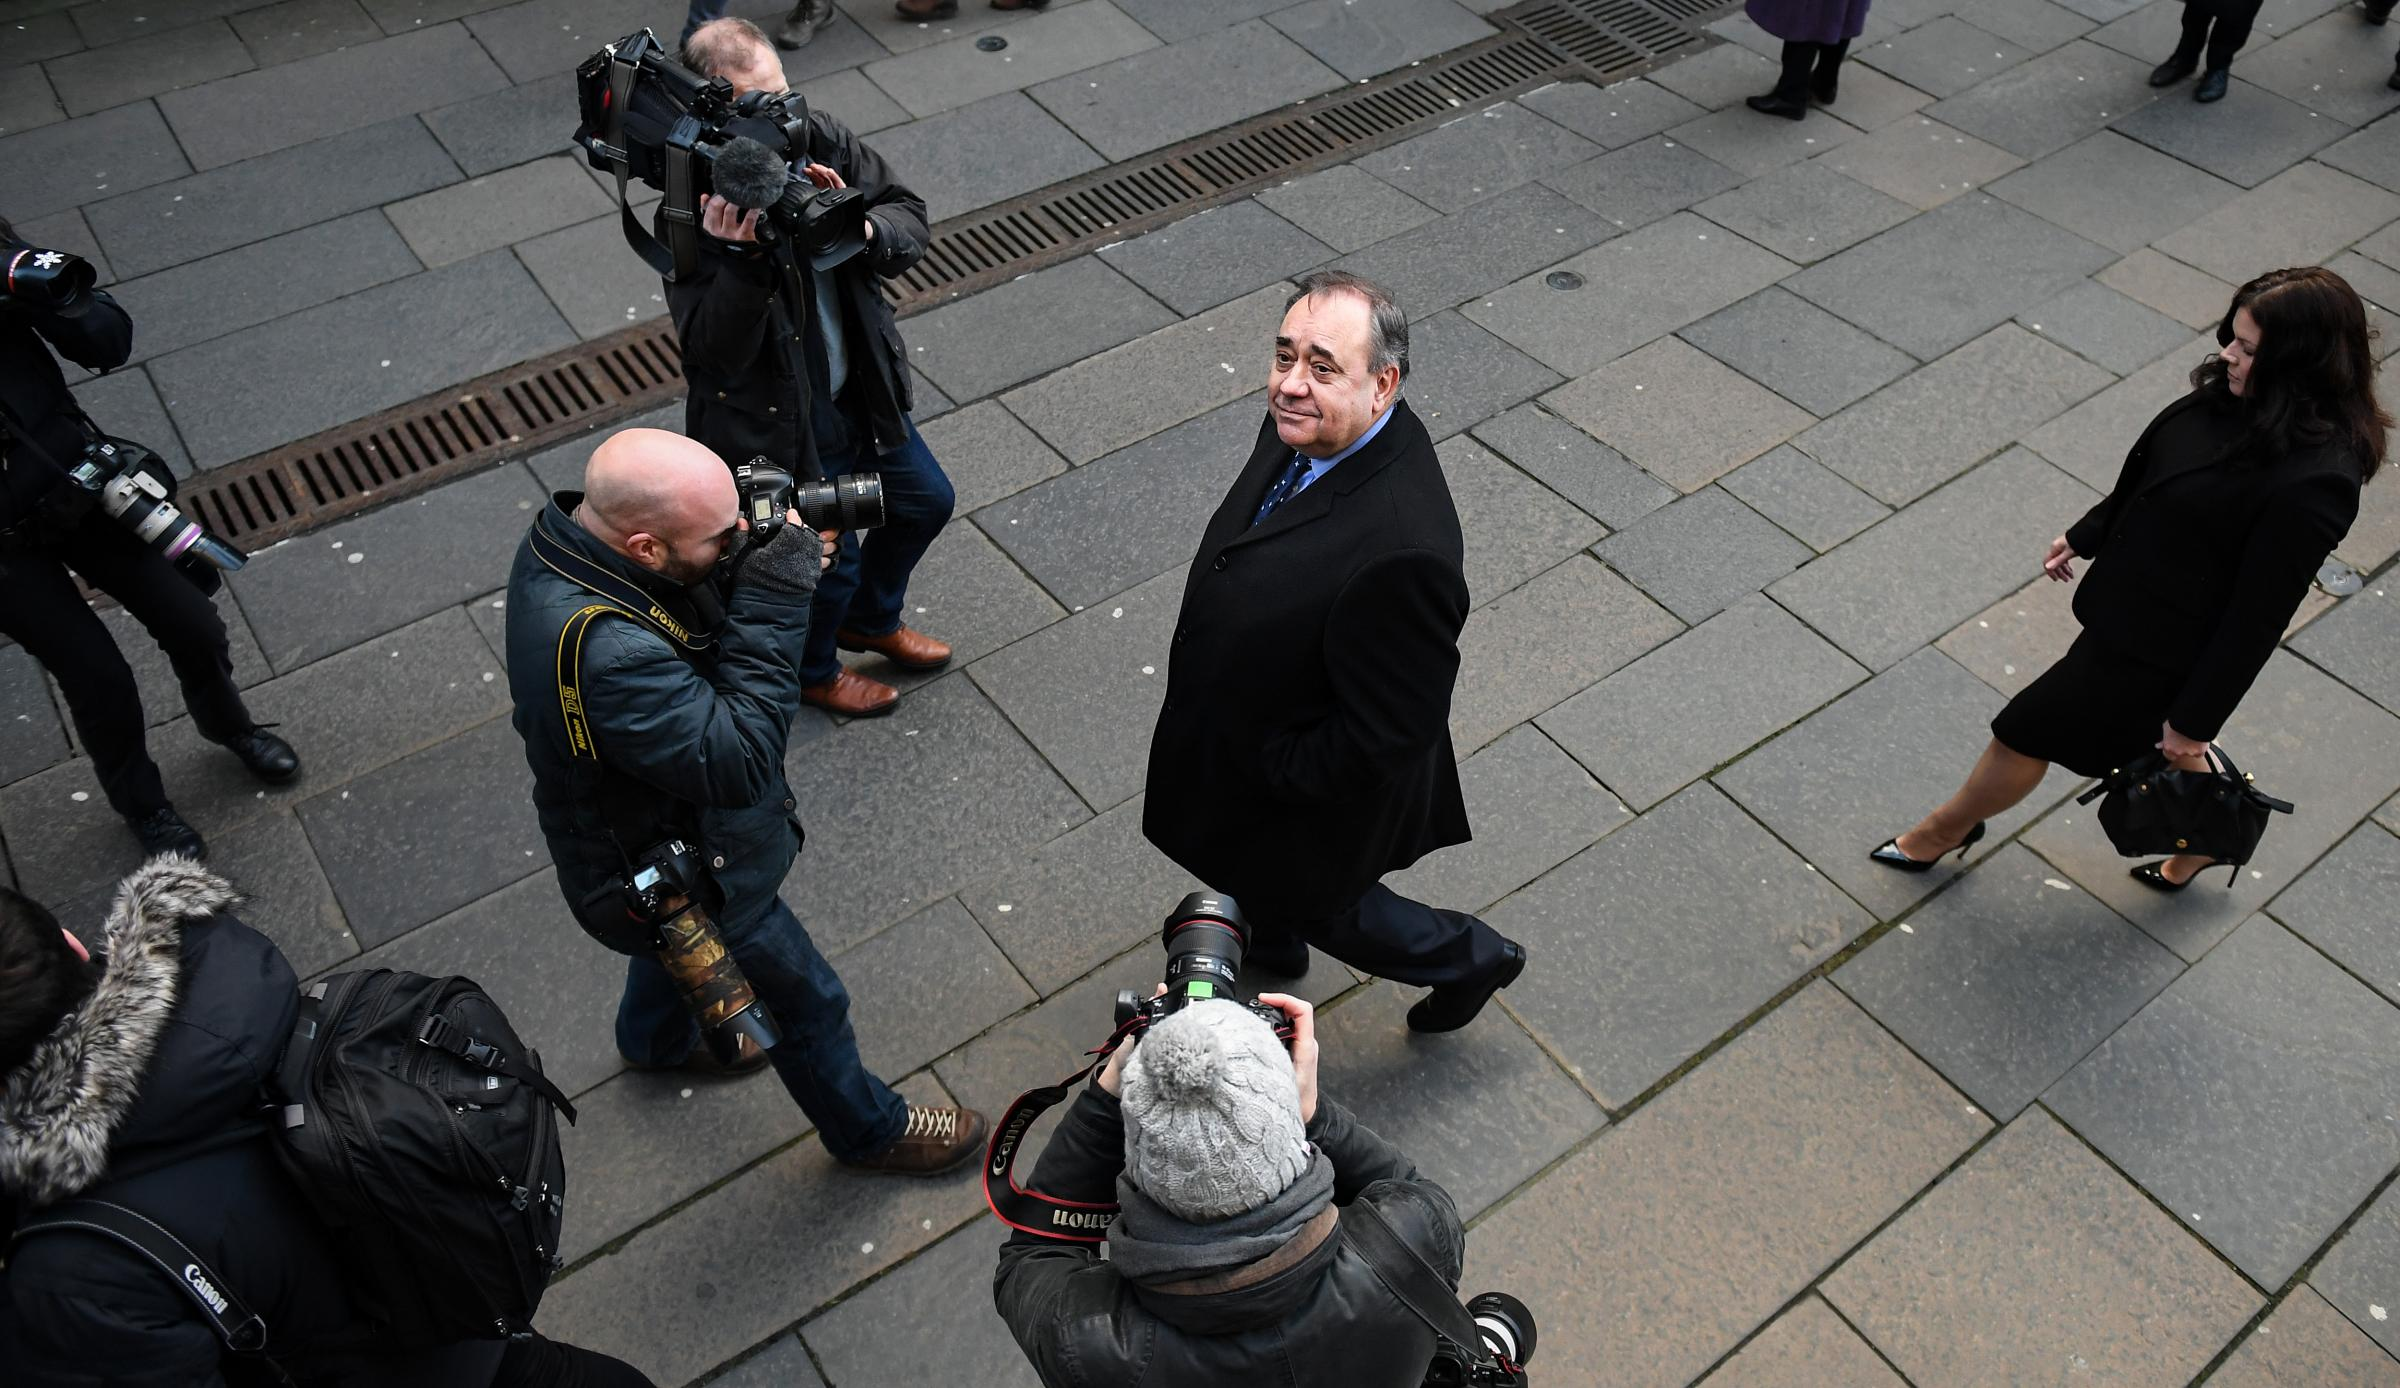 The Sunday National will have an interview with Alex Salmond tomorrow